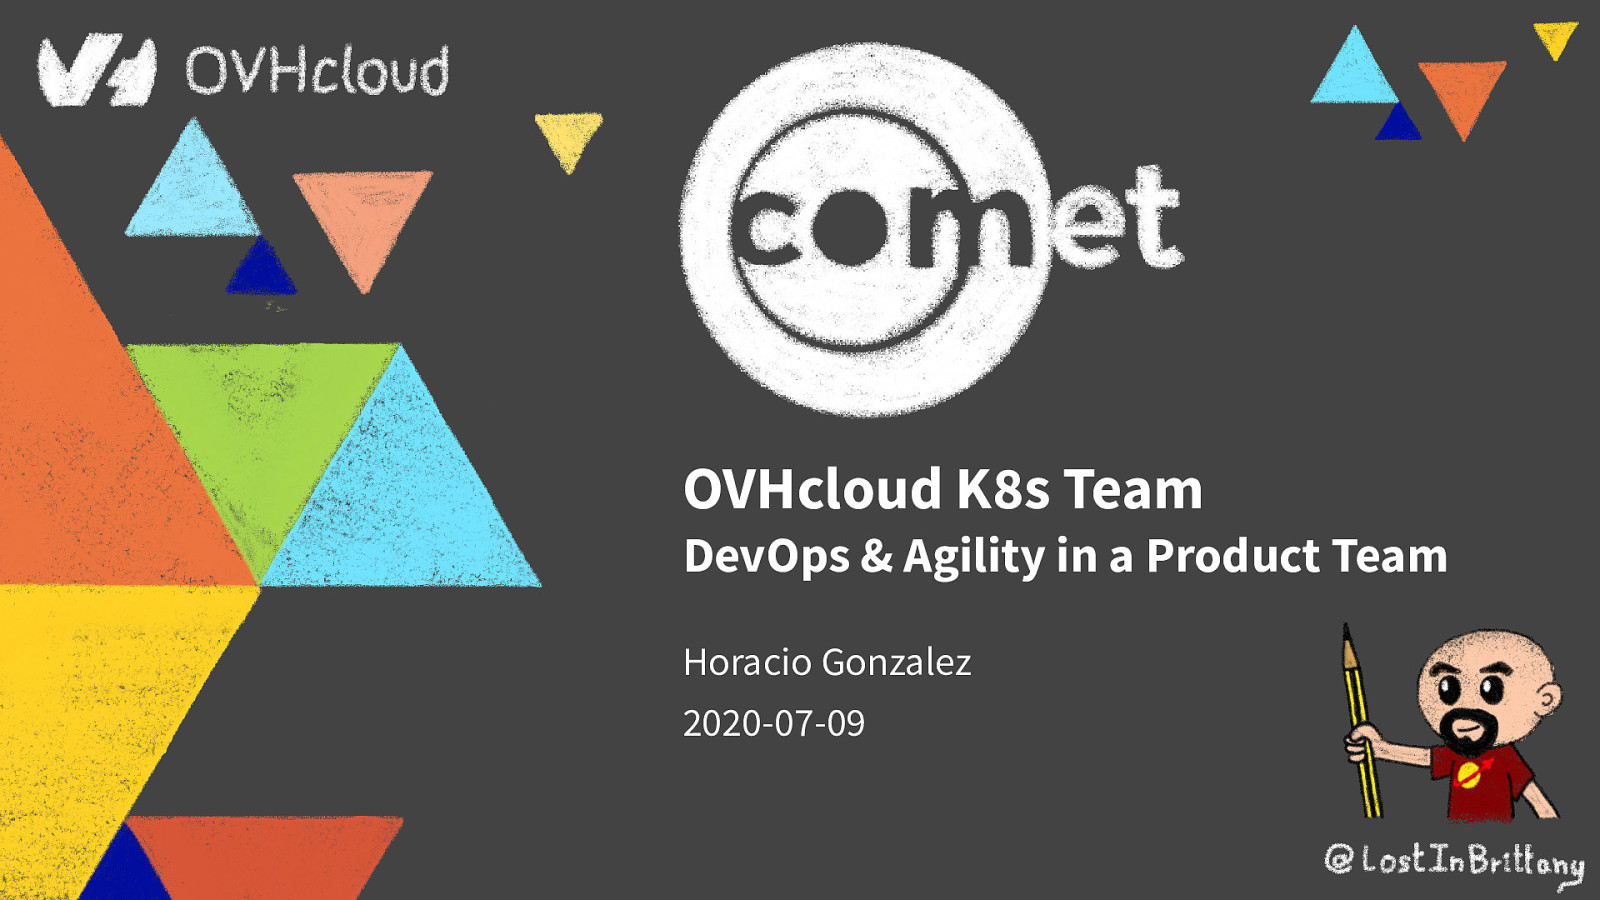 OVHcloud K8s Team: DevOps & Agility in a Product Team